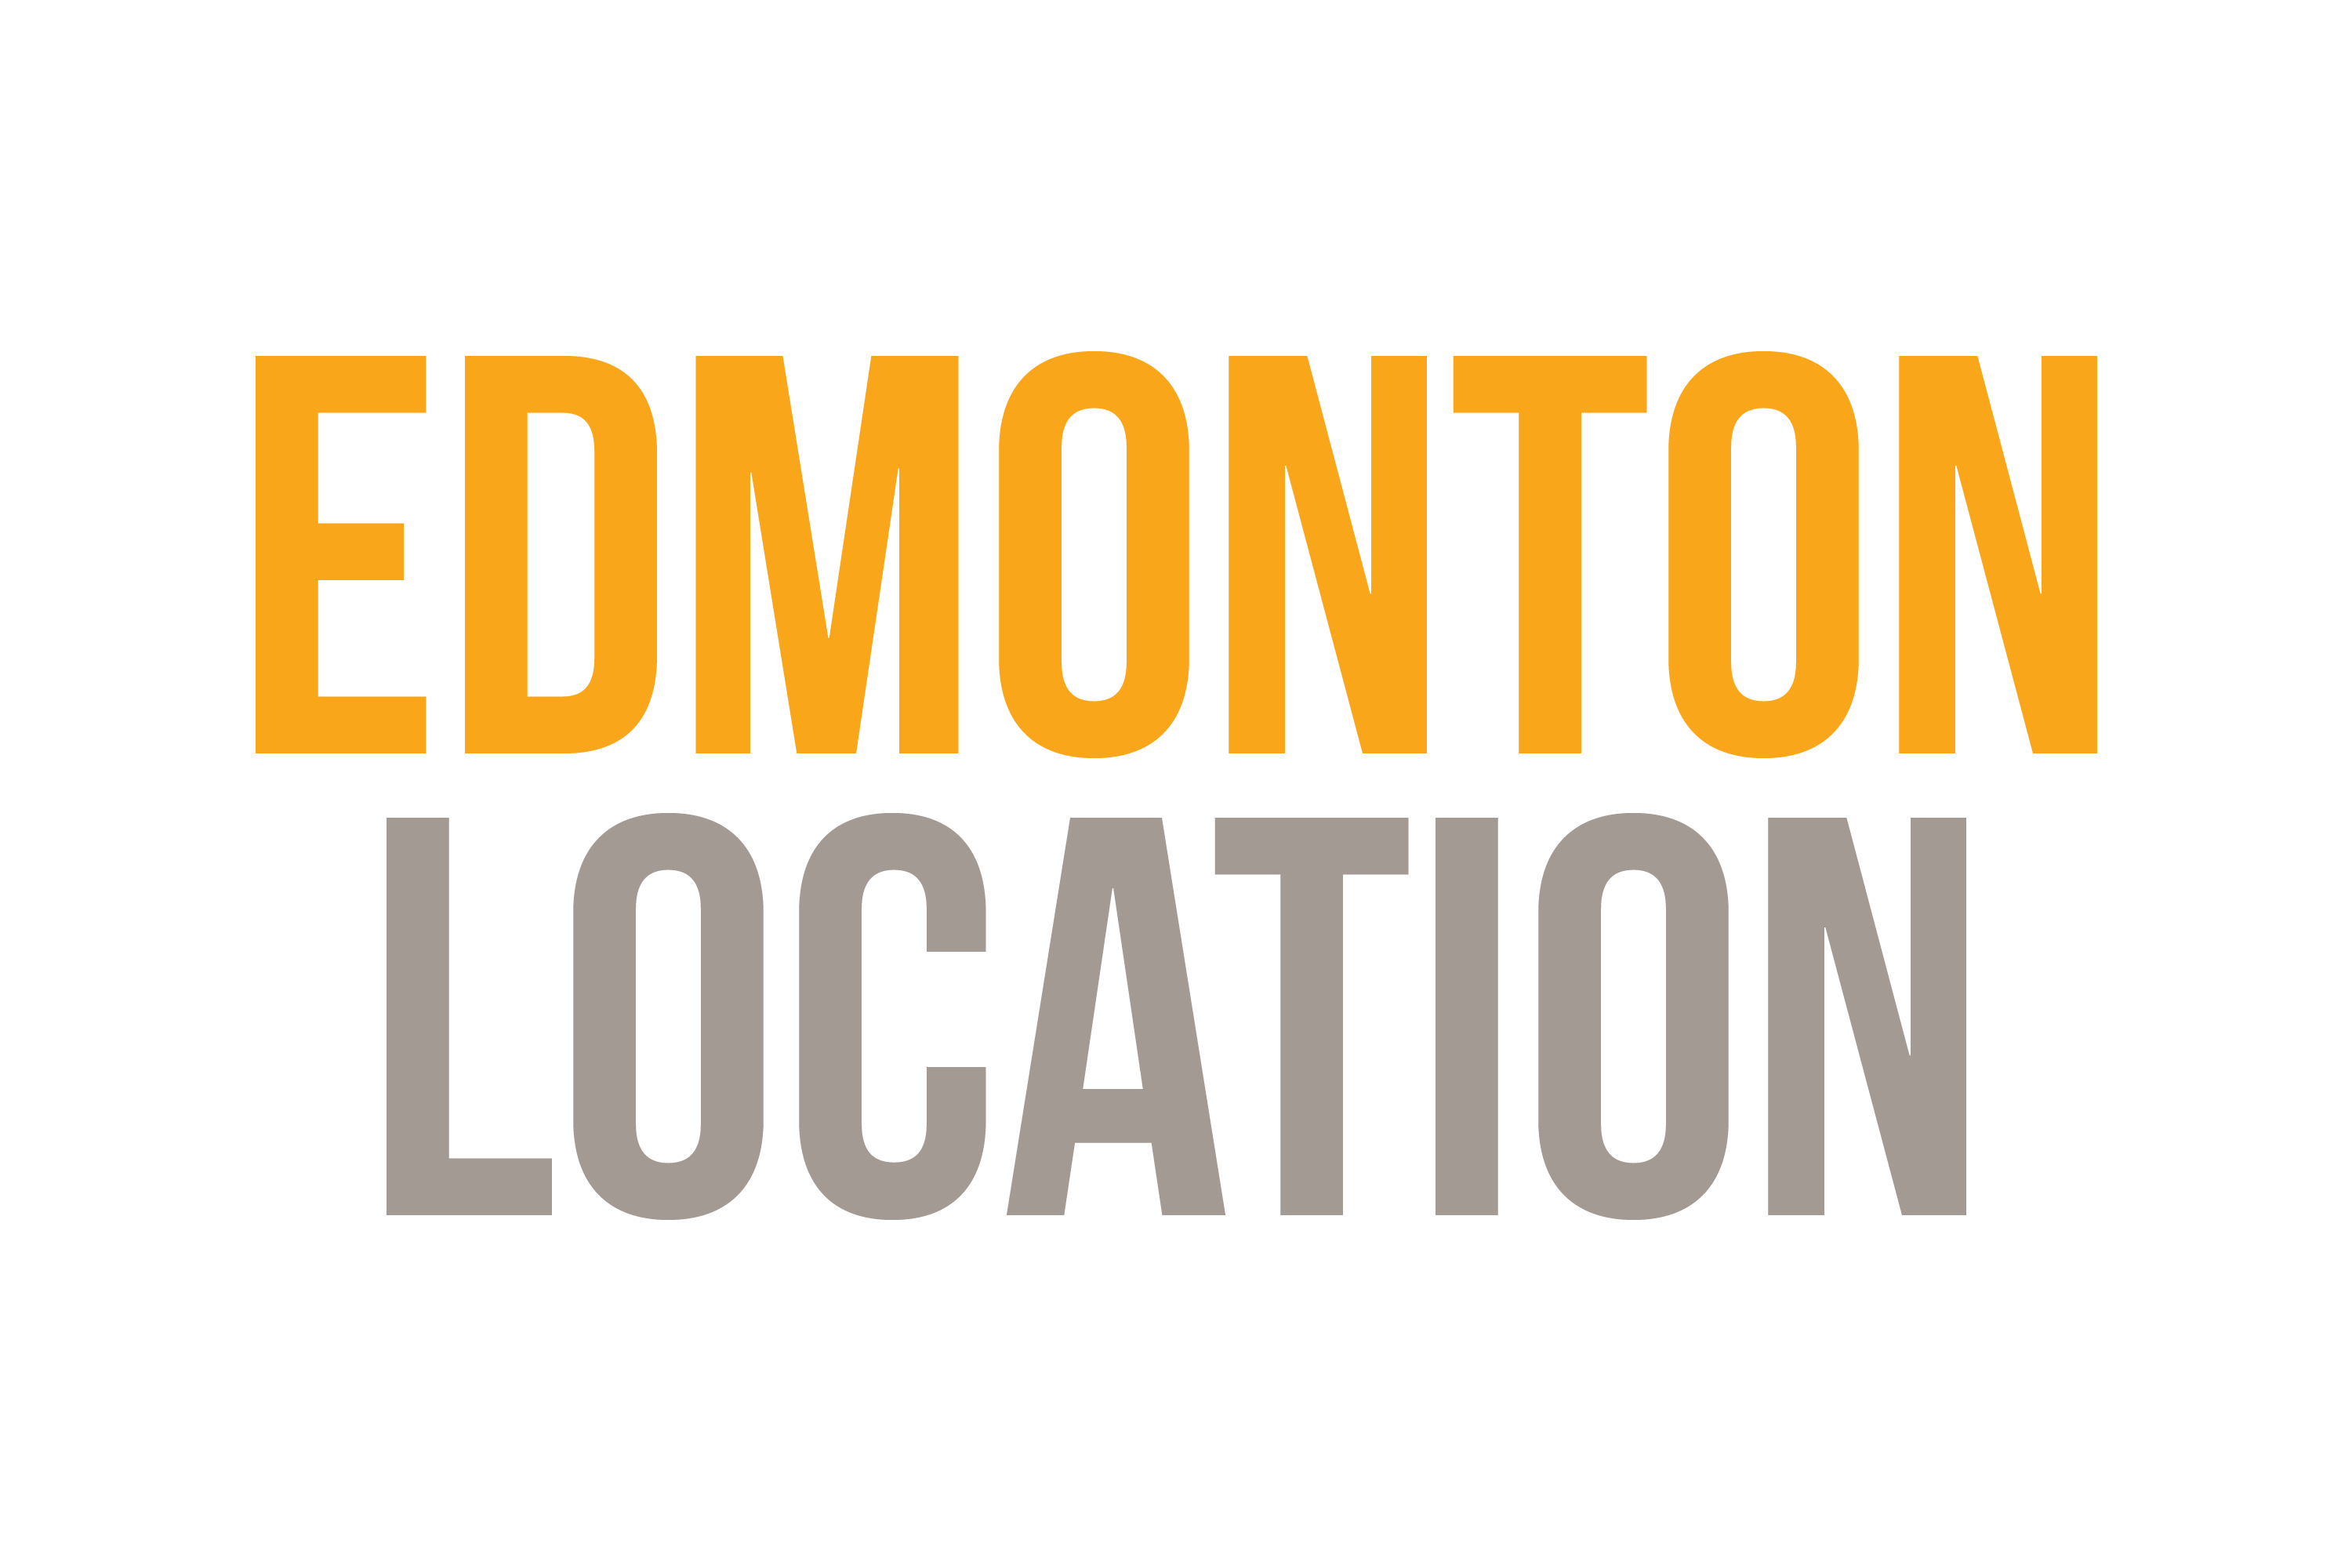 EdmontonLocation-01.png